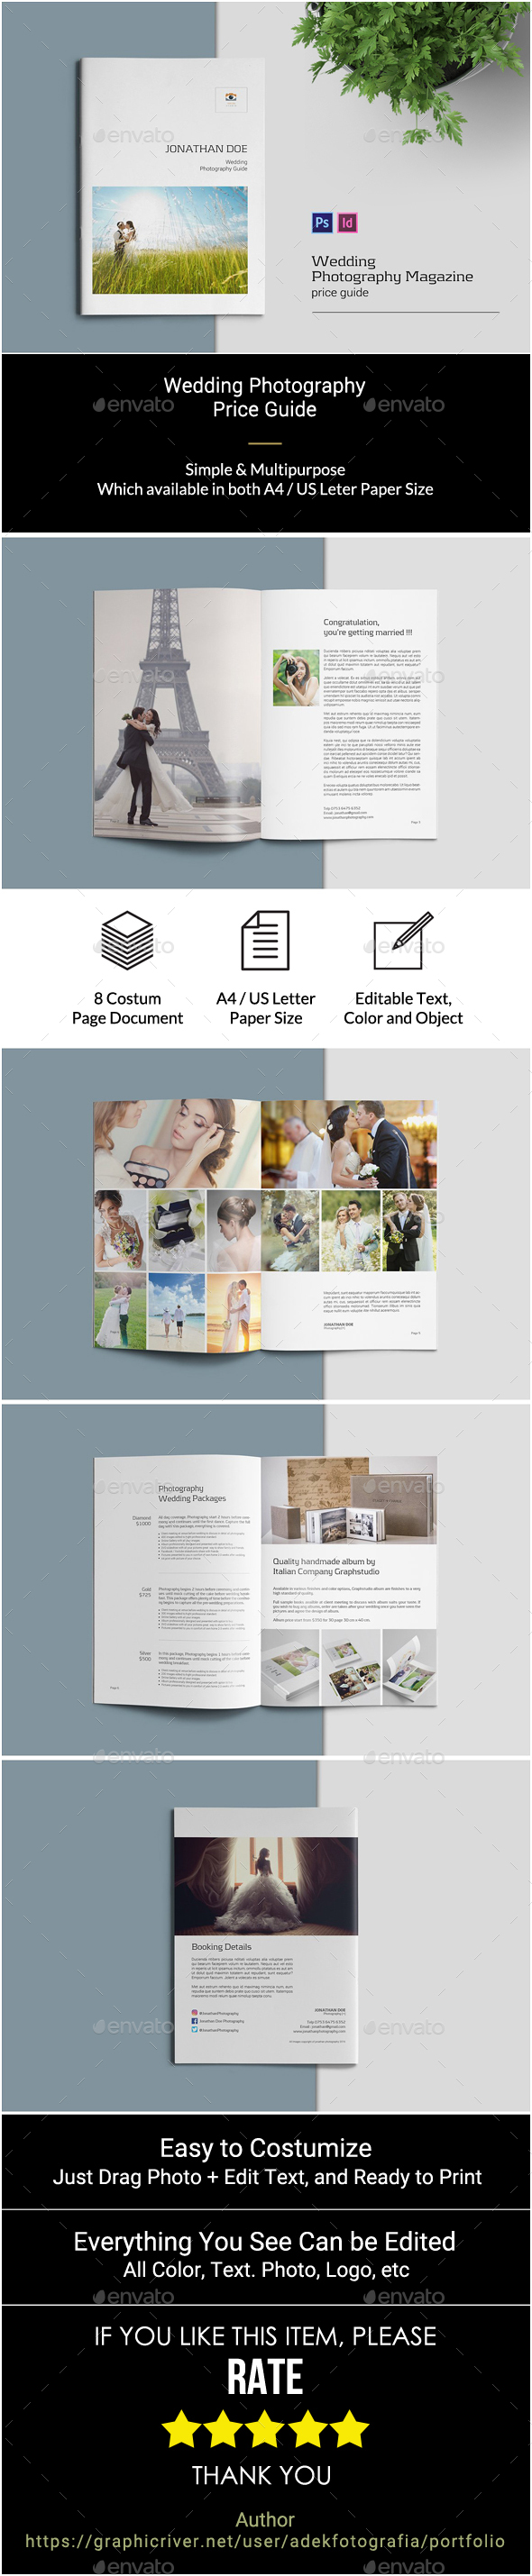 Wedding Photography Pricing Guide - Photo Albums Print Templates